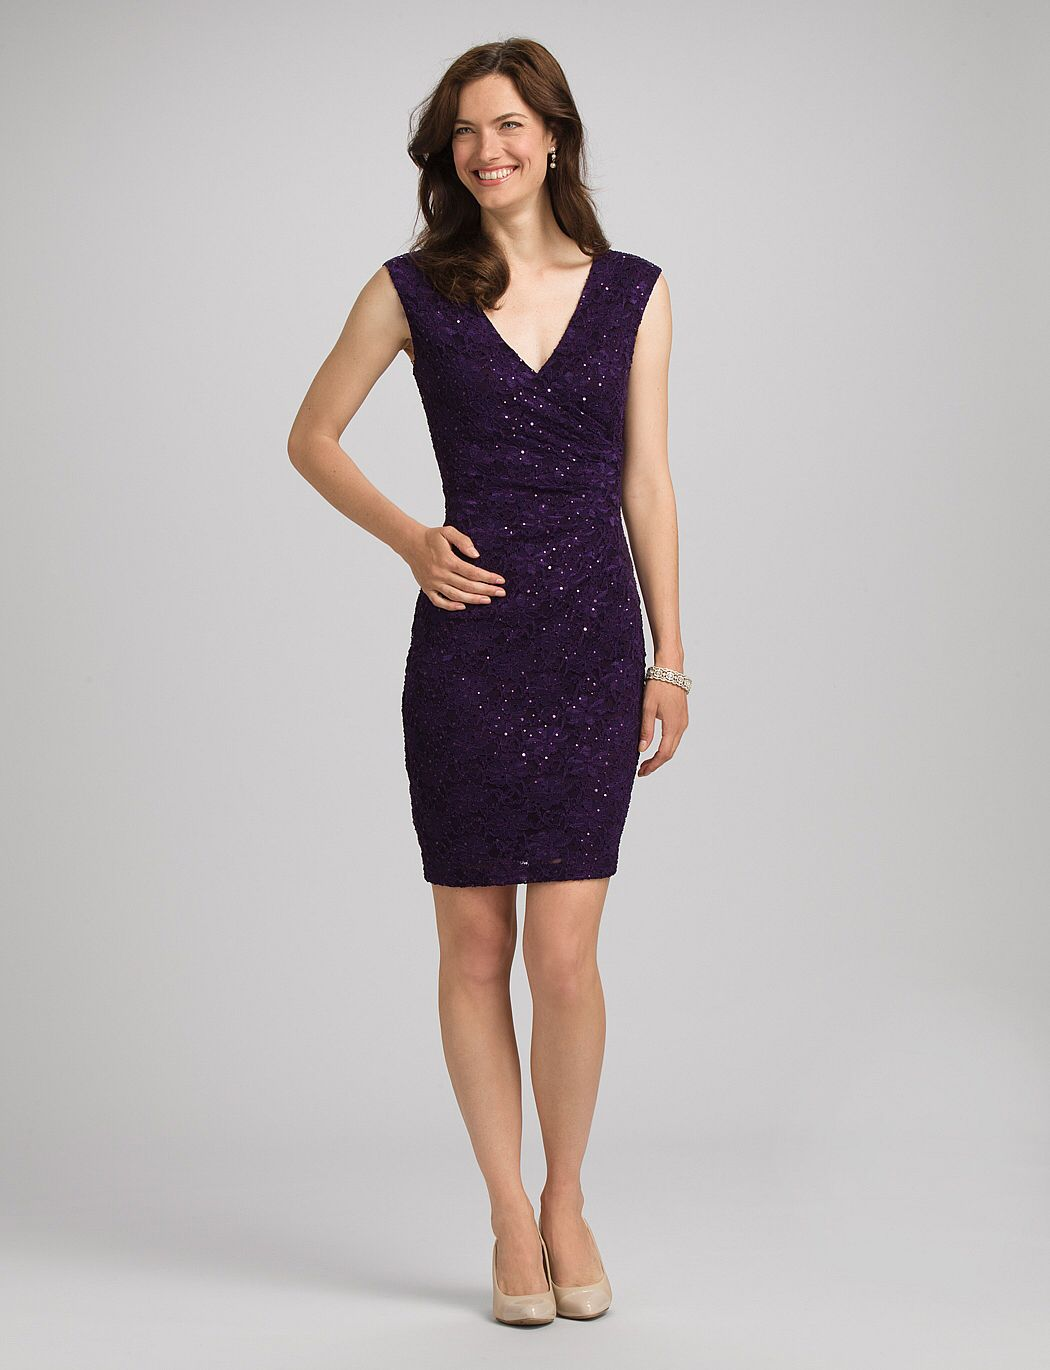 Shimmer lace sheath dress in Eggplant from DressBarn. I bought in a ...